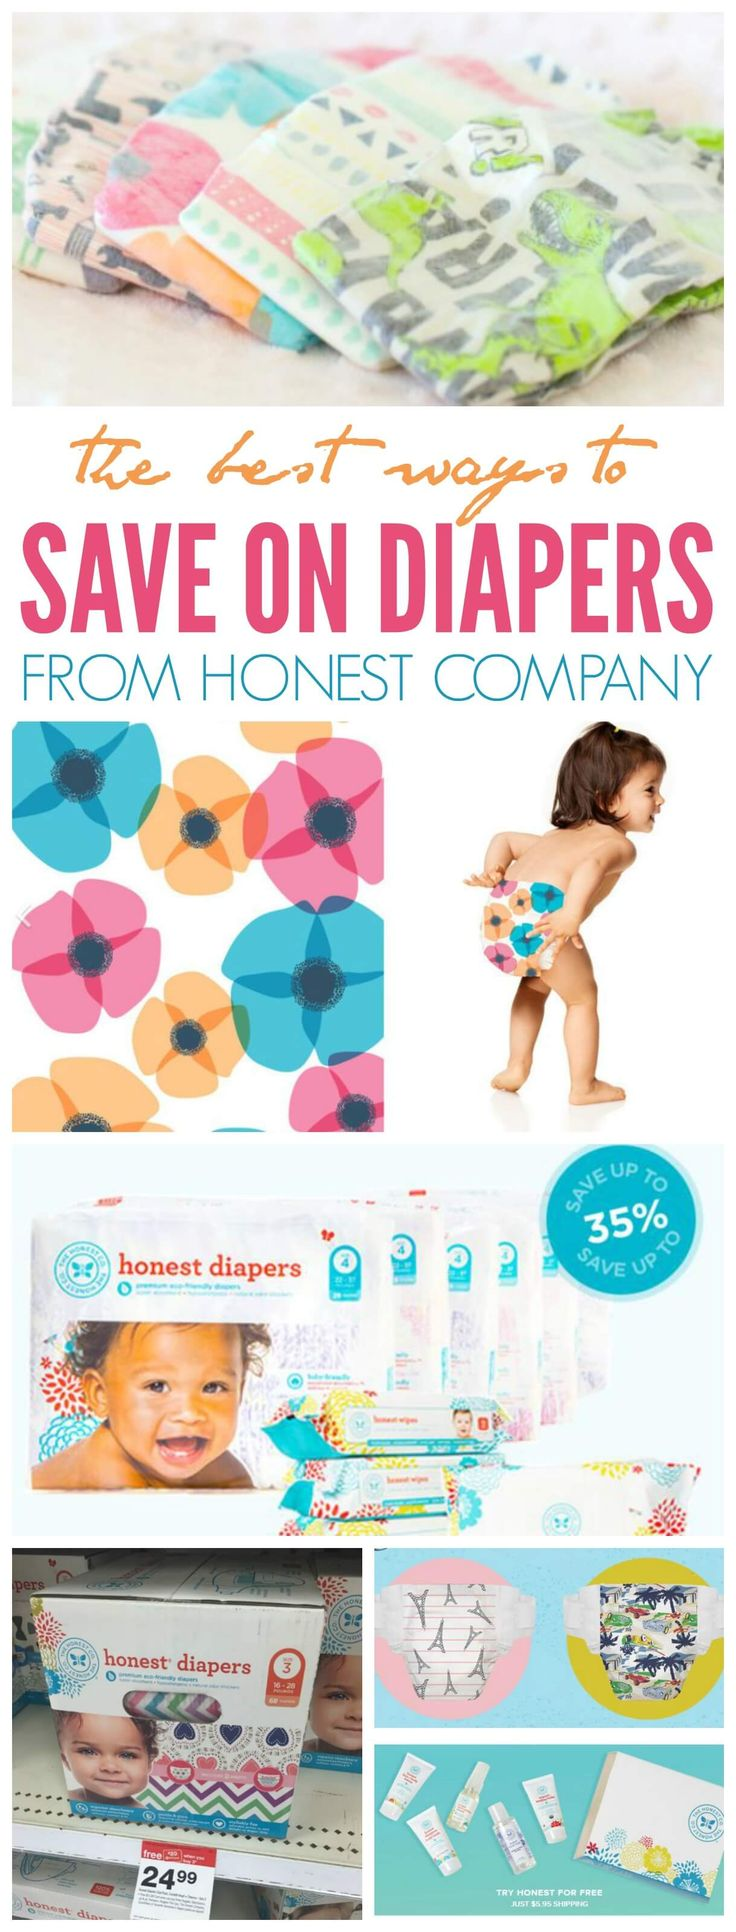 How to save on diapers from Honest Company! Money Saving Tips and Tricks!